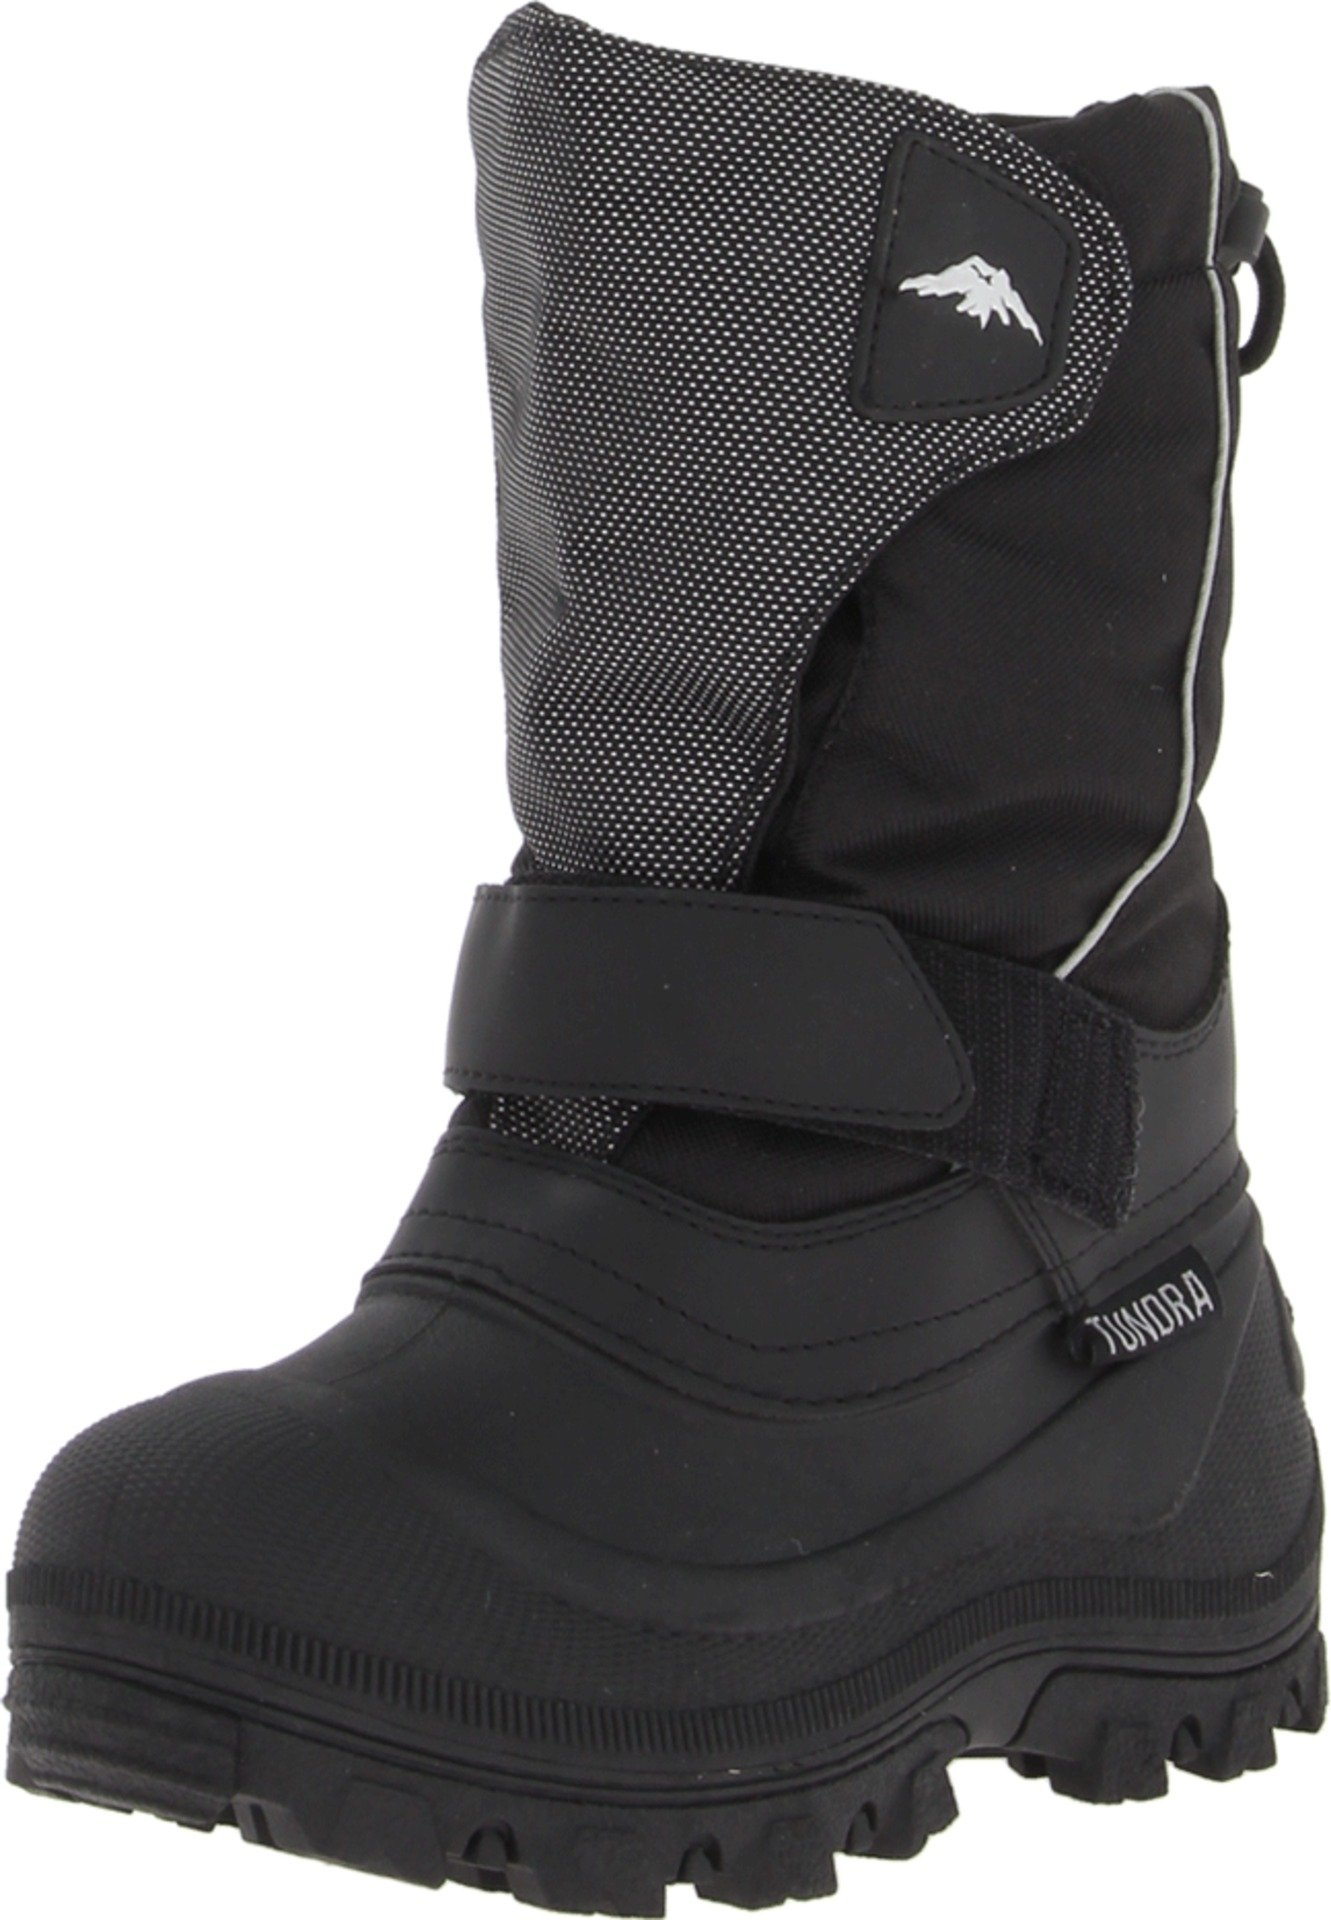 Best Rated in Boys' Snow Boots & Helpful Customer Reviews